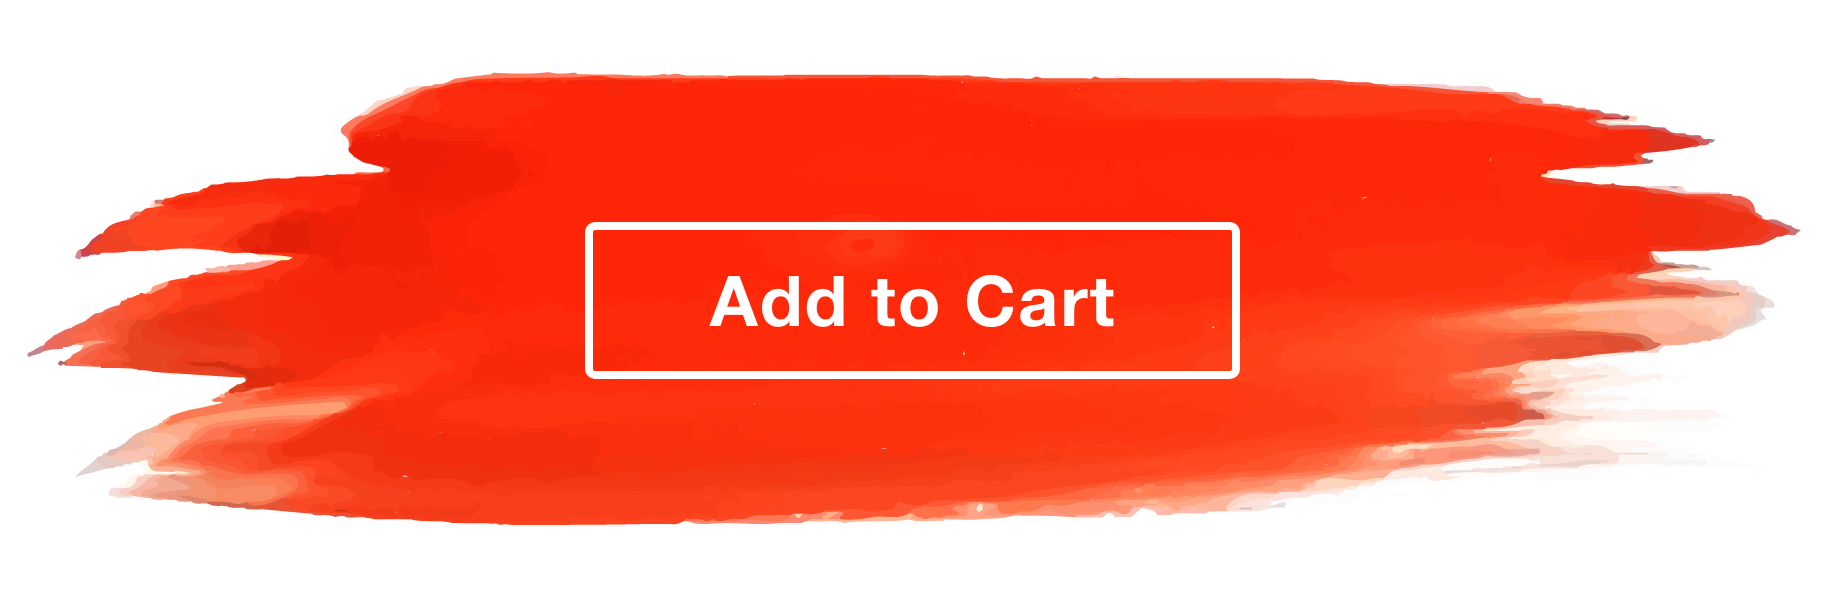 add to cart button red